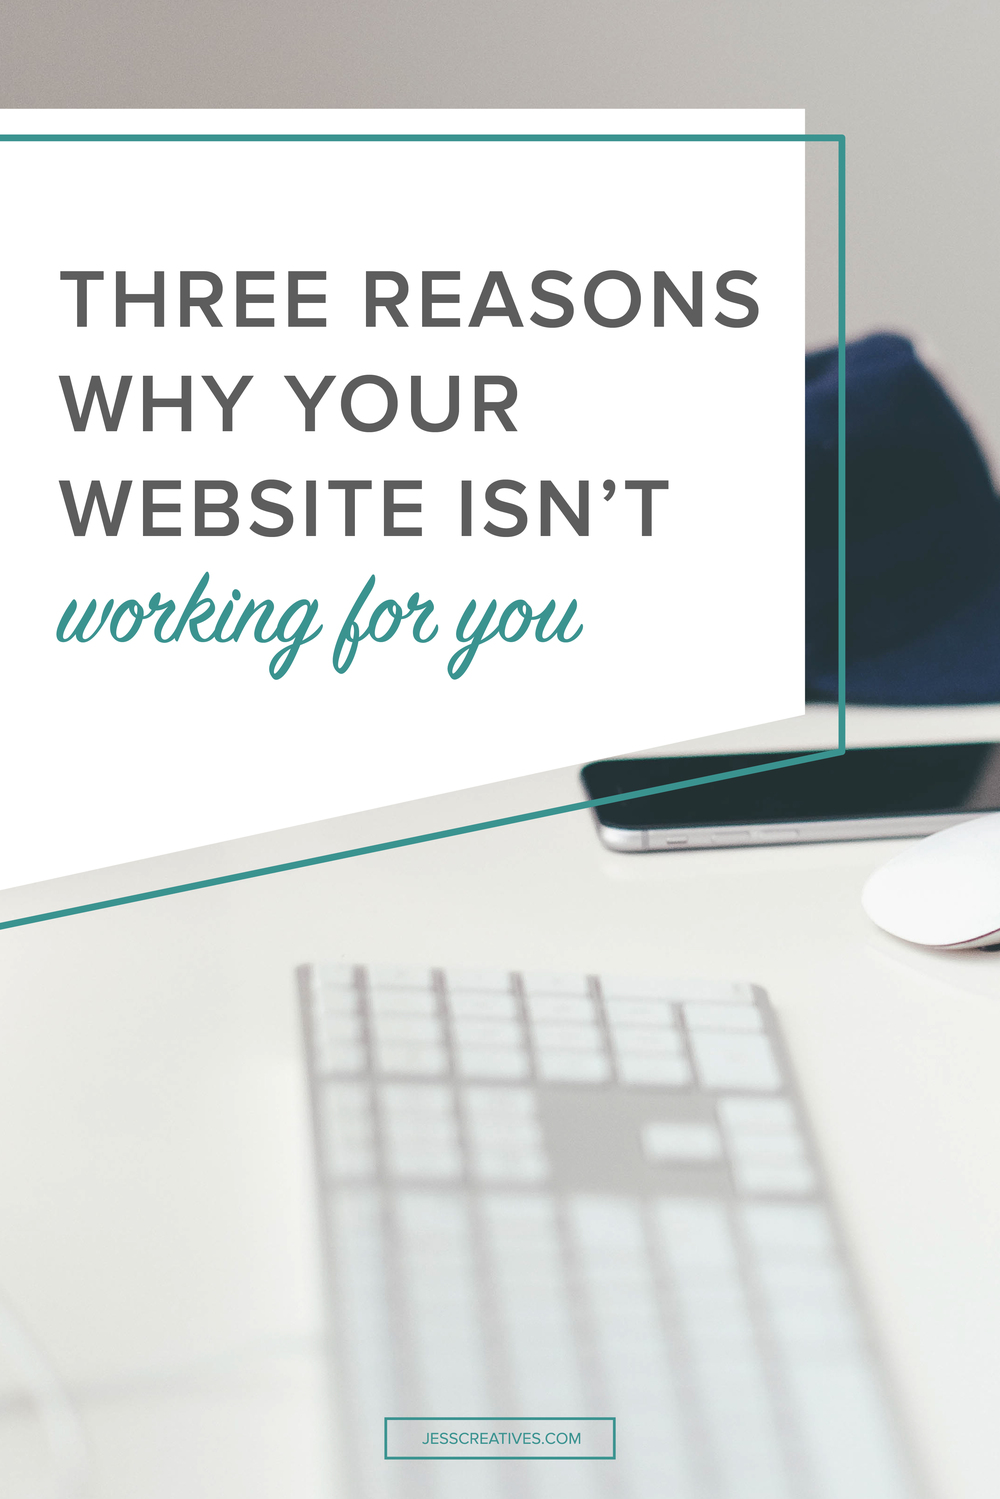 You know having a great website is crucial to growing your business. But, I know that you're struggling to make it really work for you. You try to design it as best you can, but you know your DIY skills are lacking. What's worse? You're not getting the clients you desperately need!